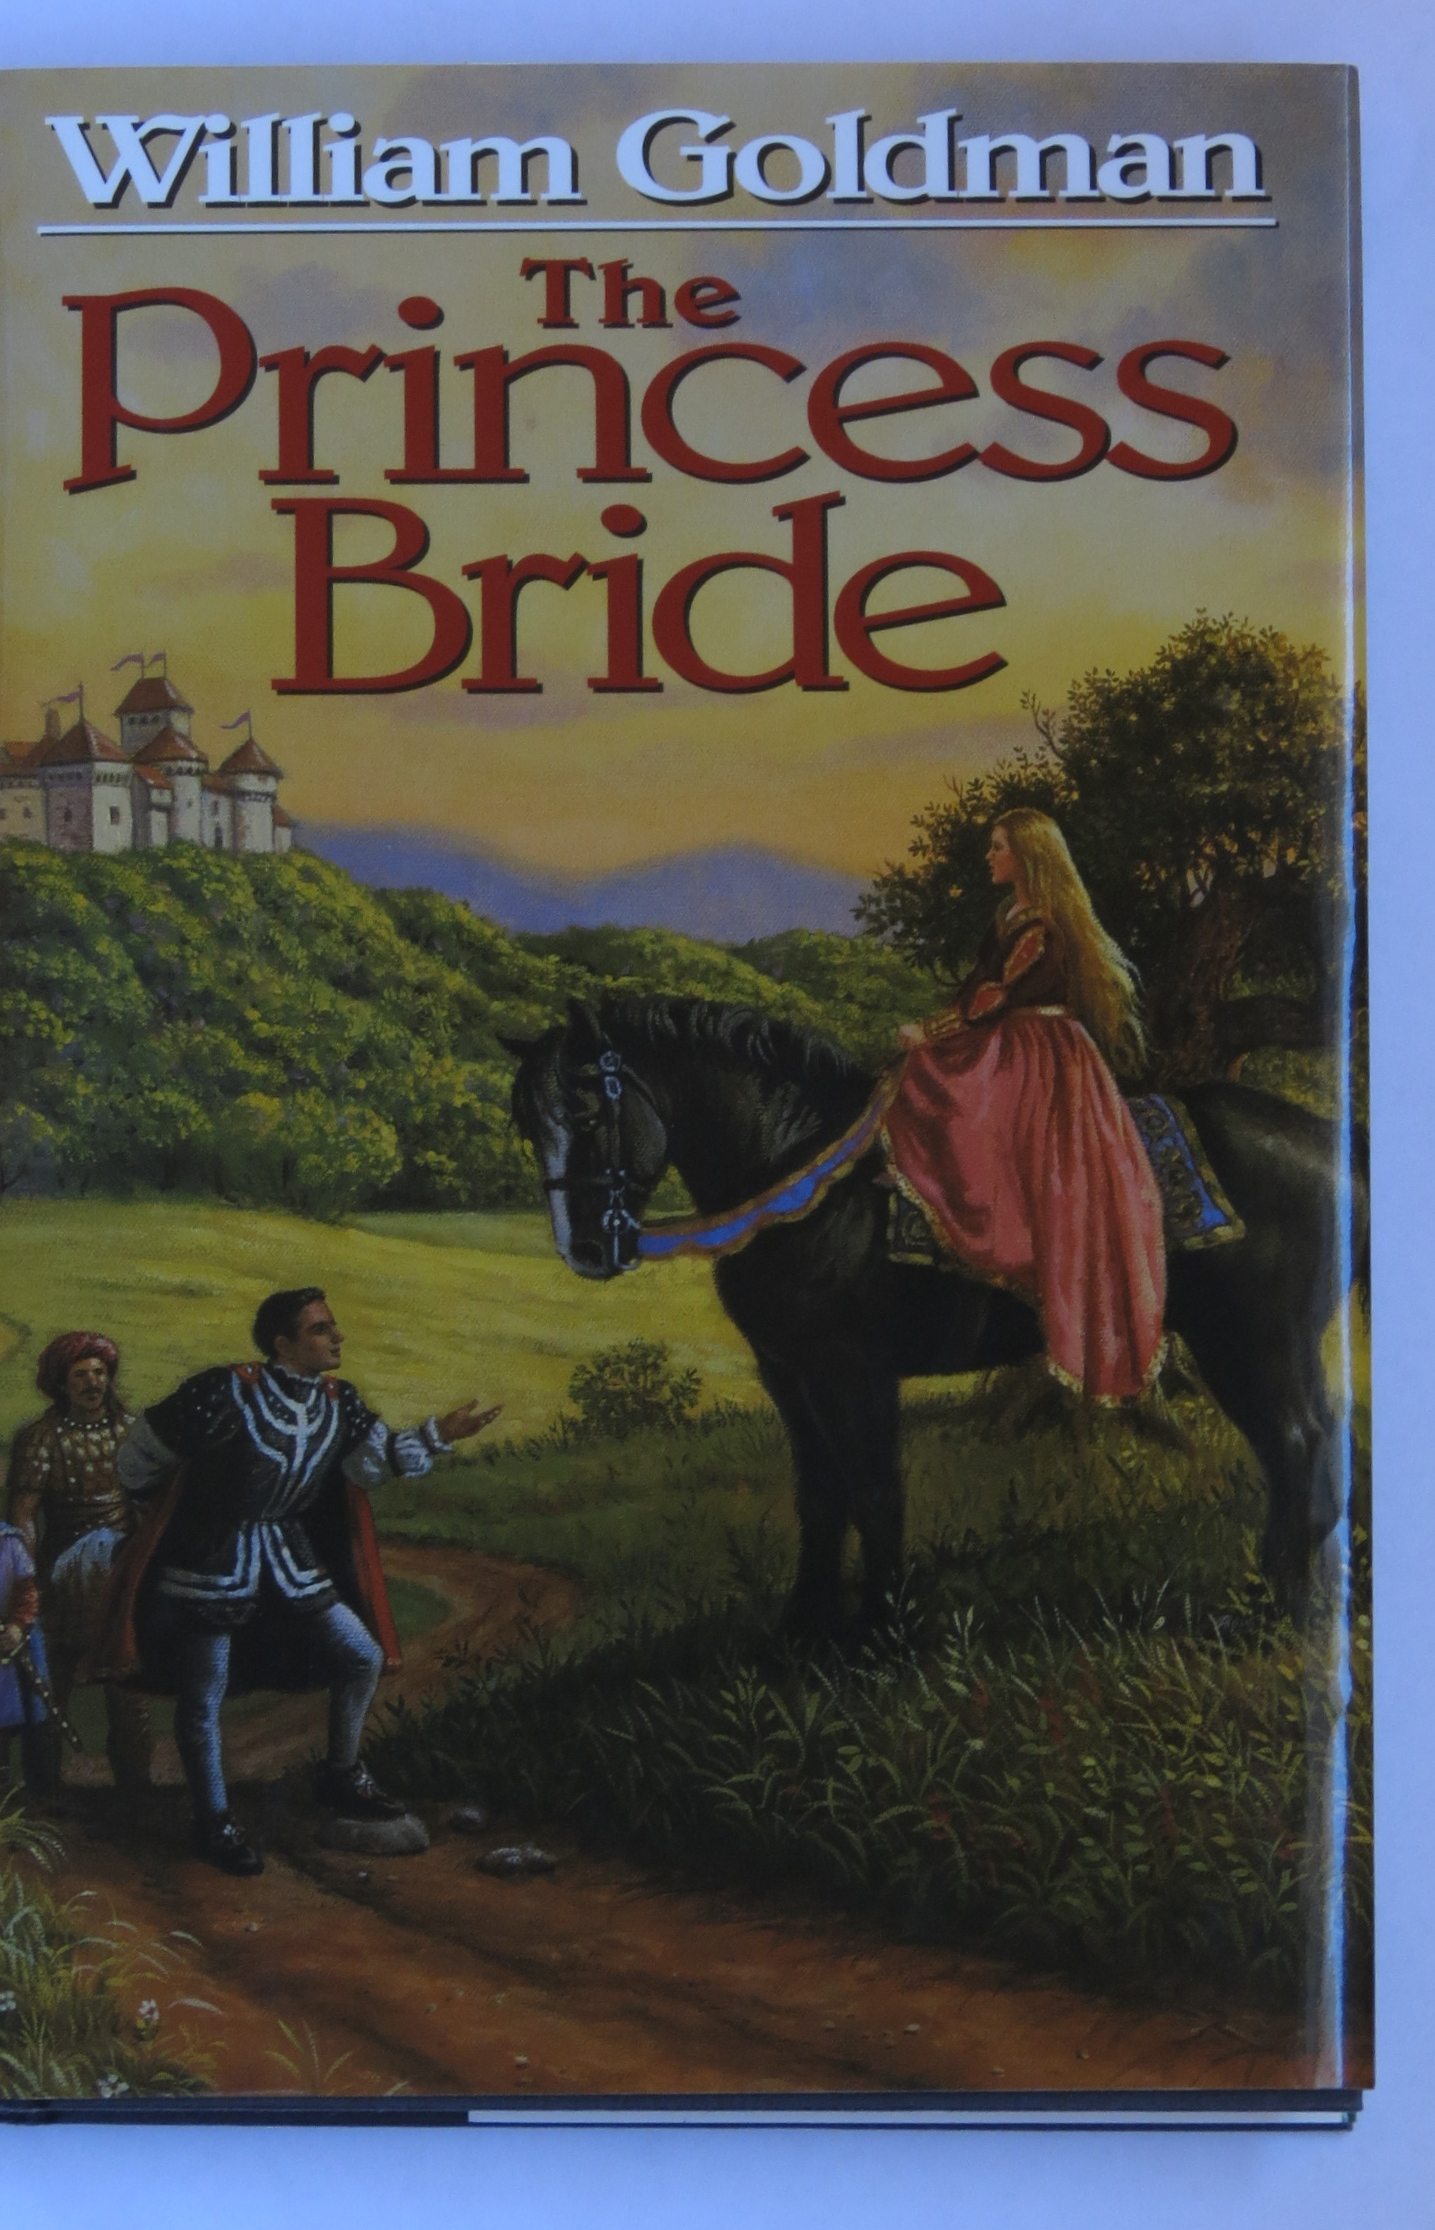 the princess bride essay the princess bride an illustrated edition of s morgenstern s classic